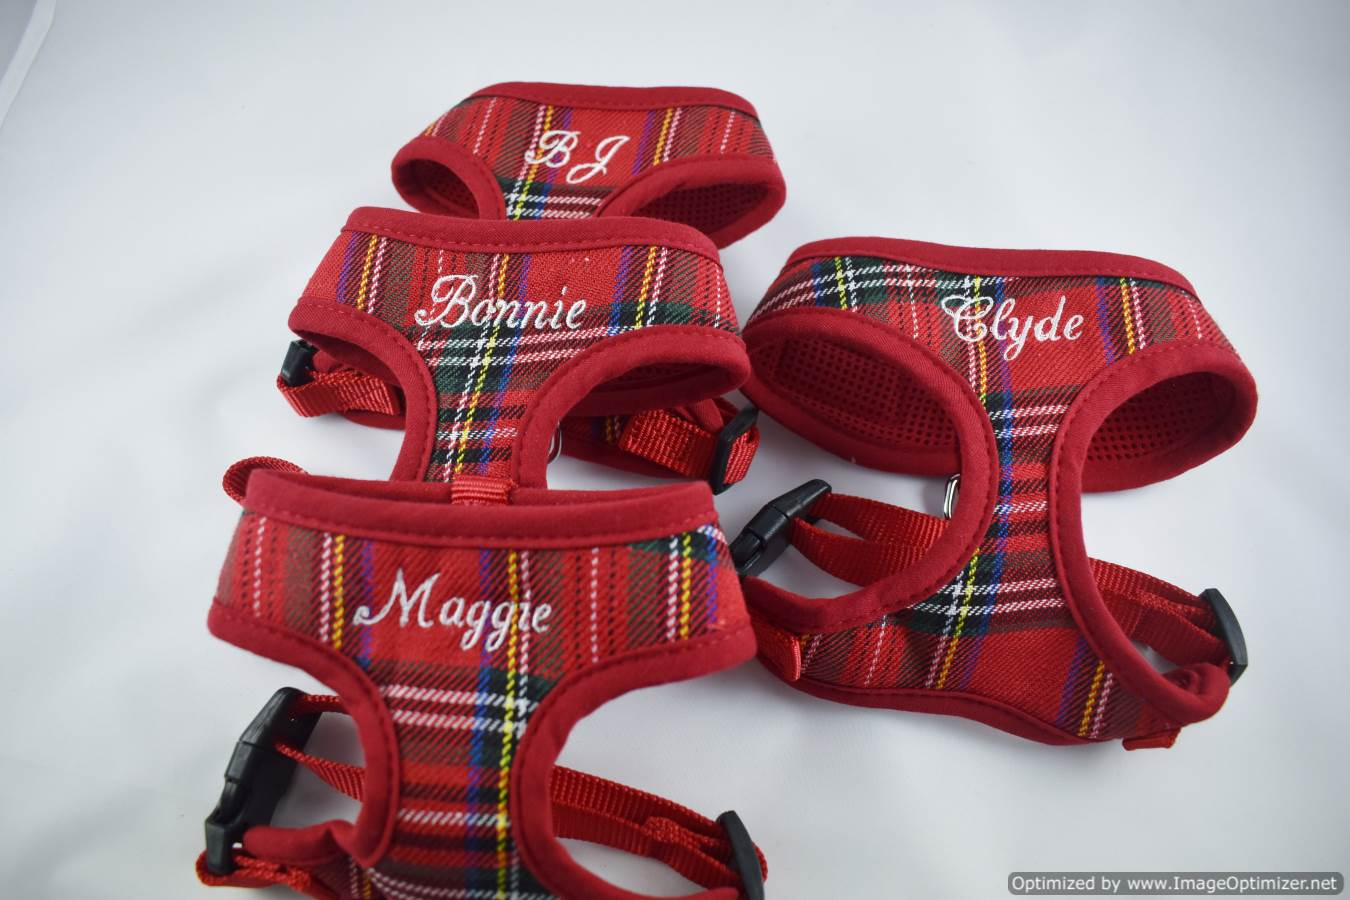 Personalized Custom Red Stewart Plaid Padded DOG Harness Adjustable Soft Comfortable Custom Embroidered Name or Order it Blank